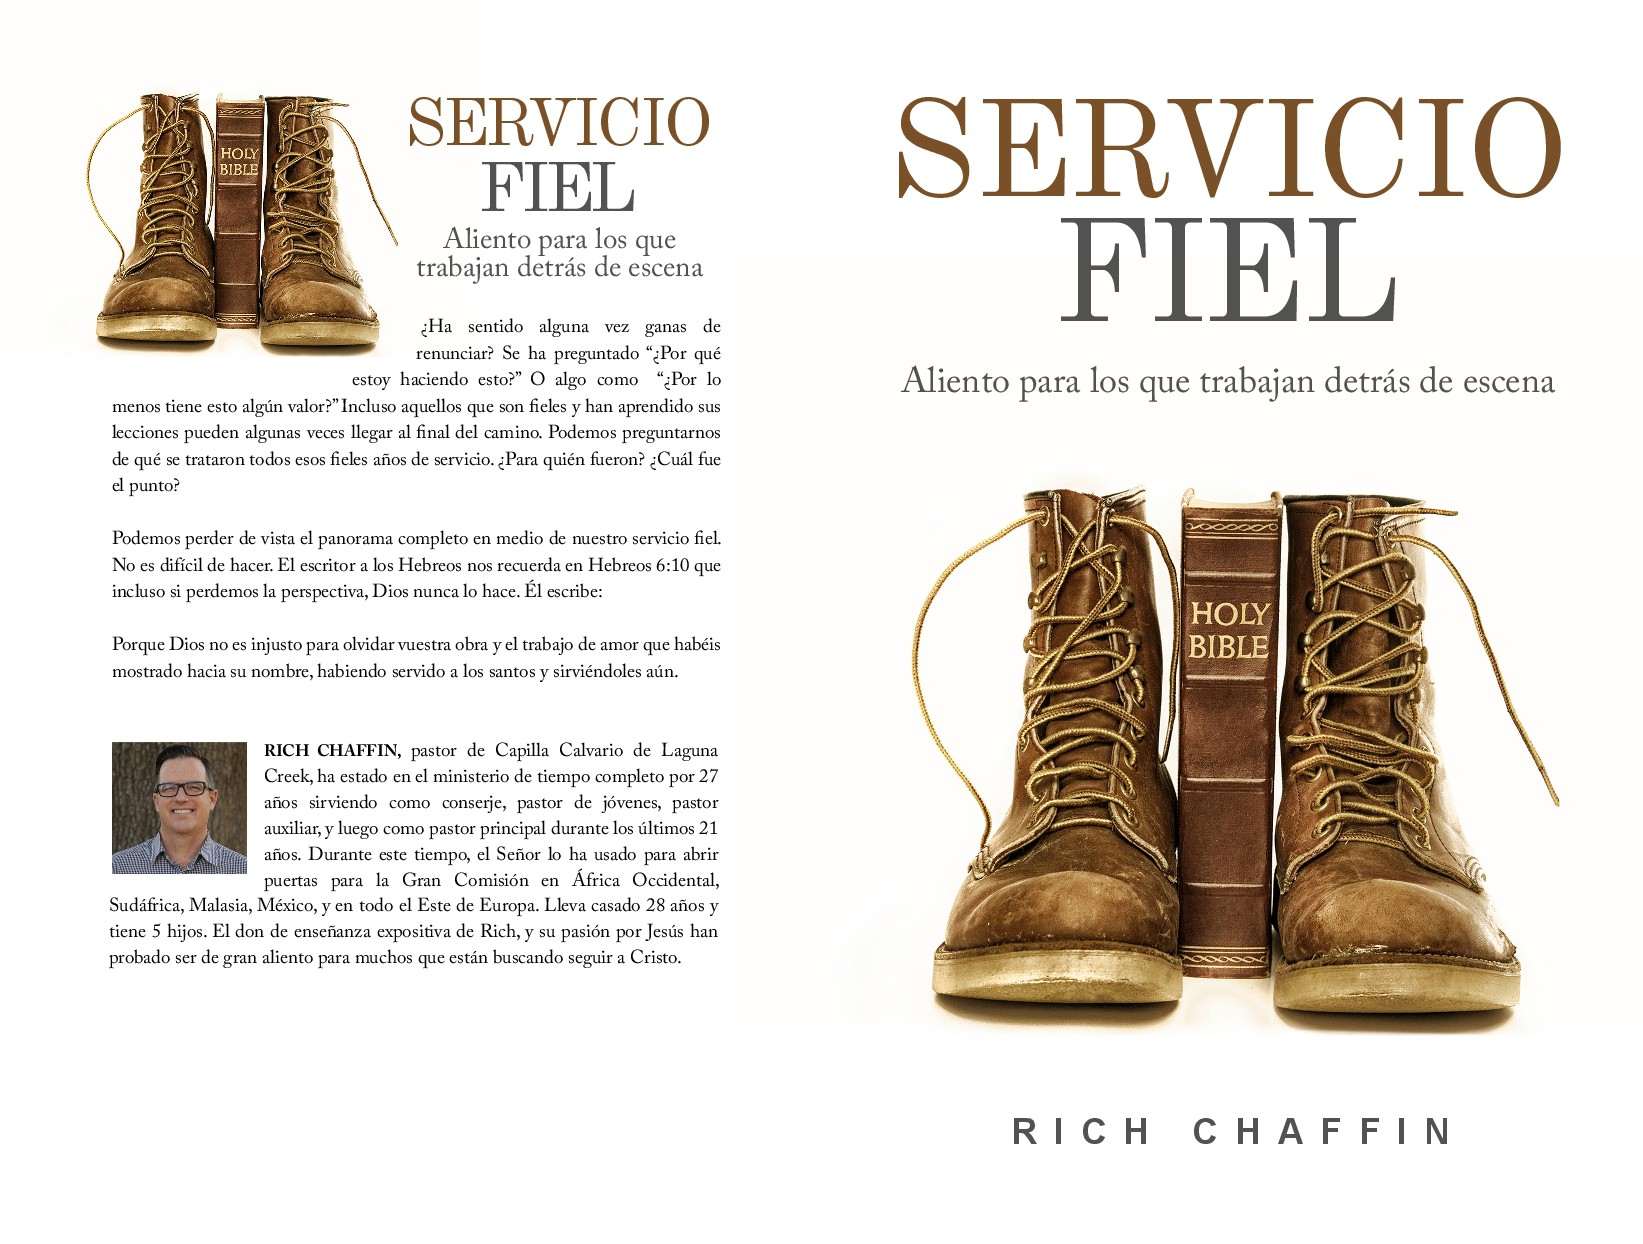 Spanish version of Faithful Service